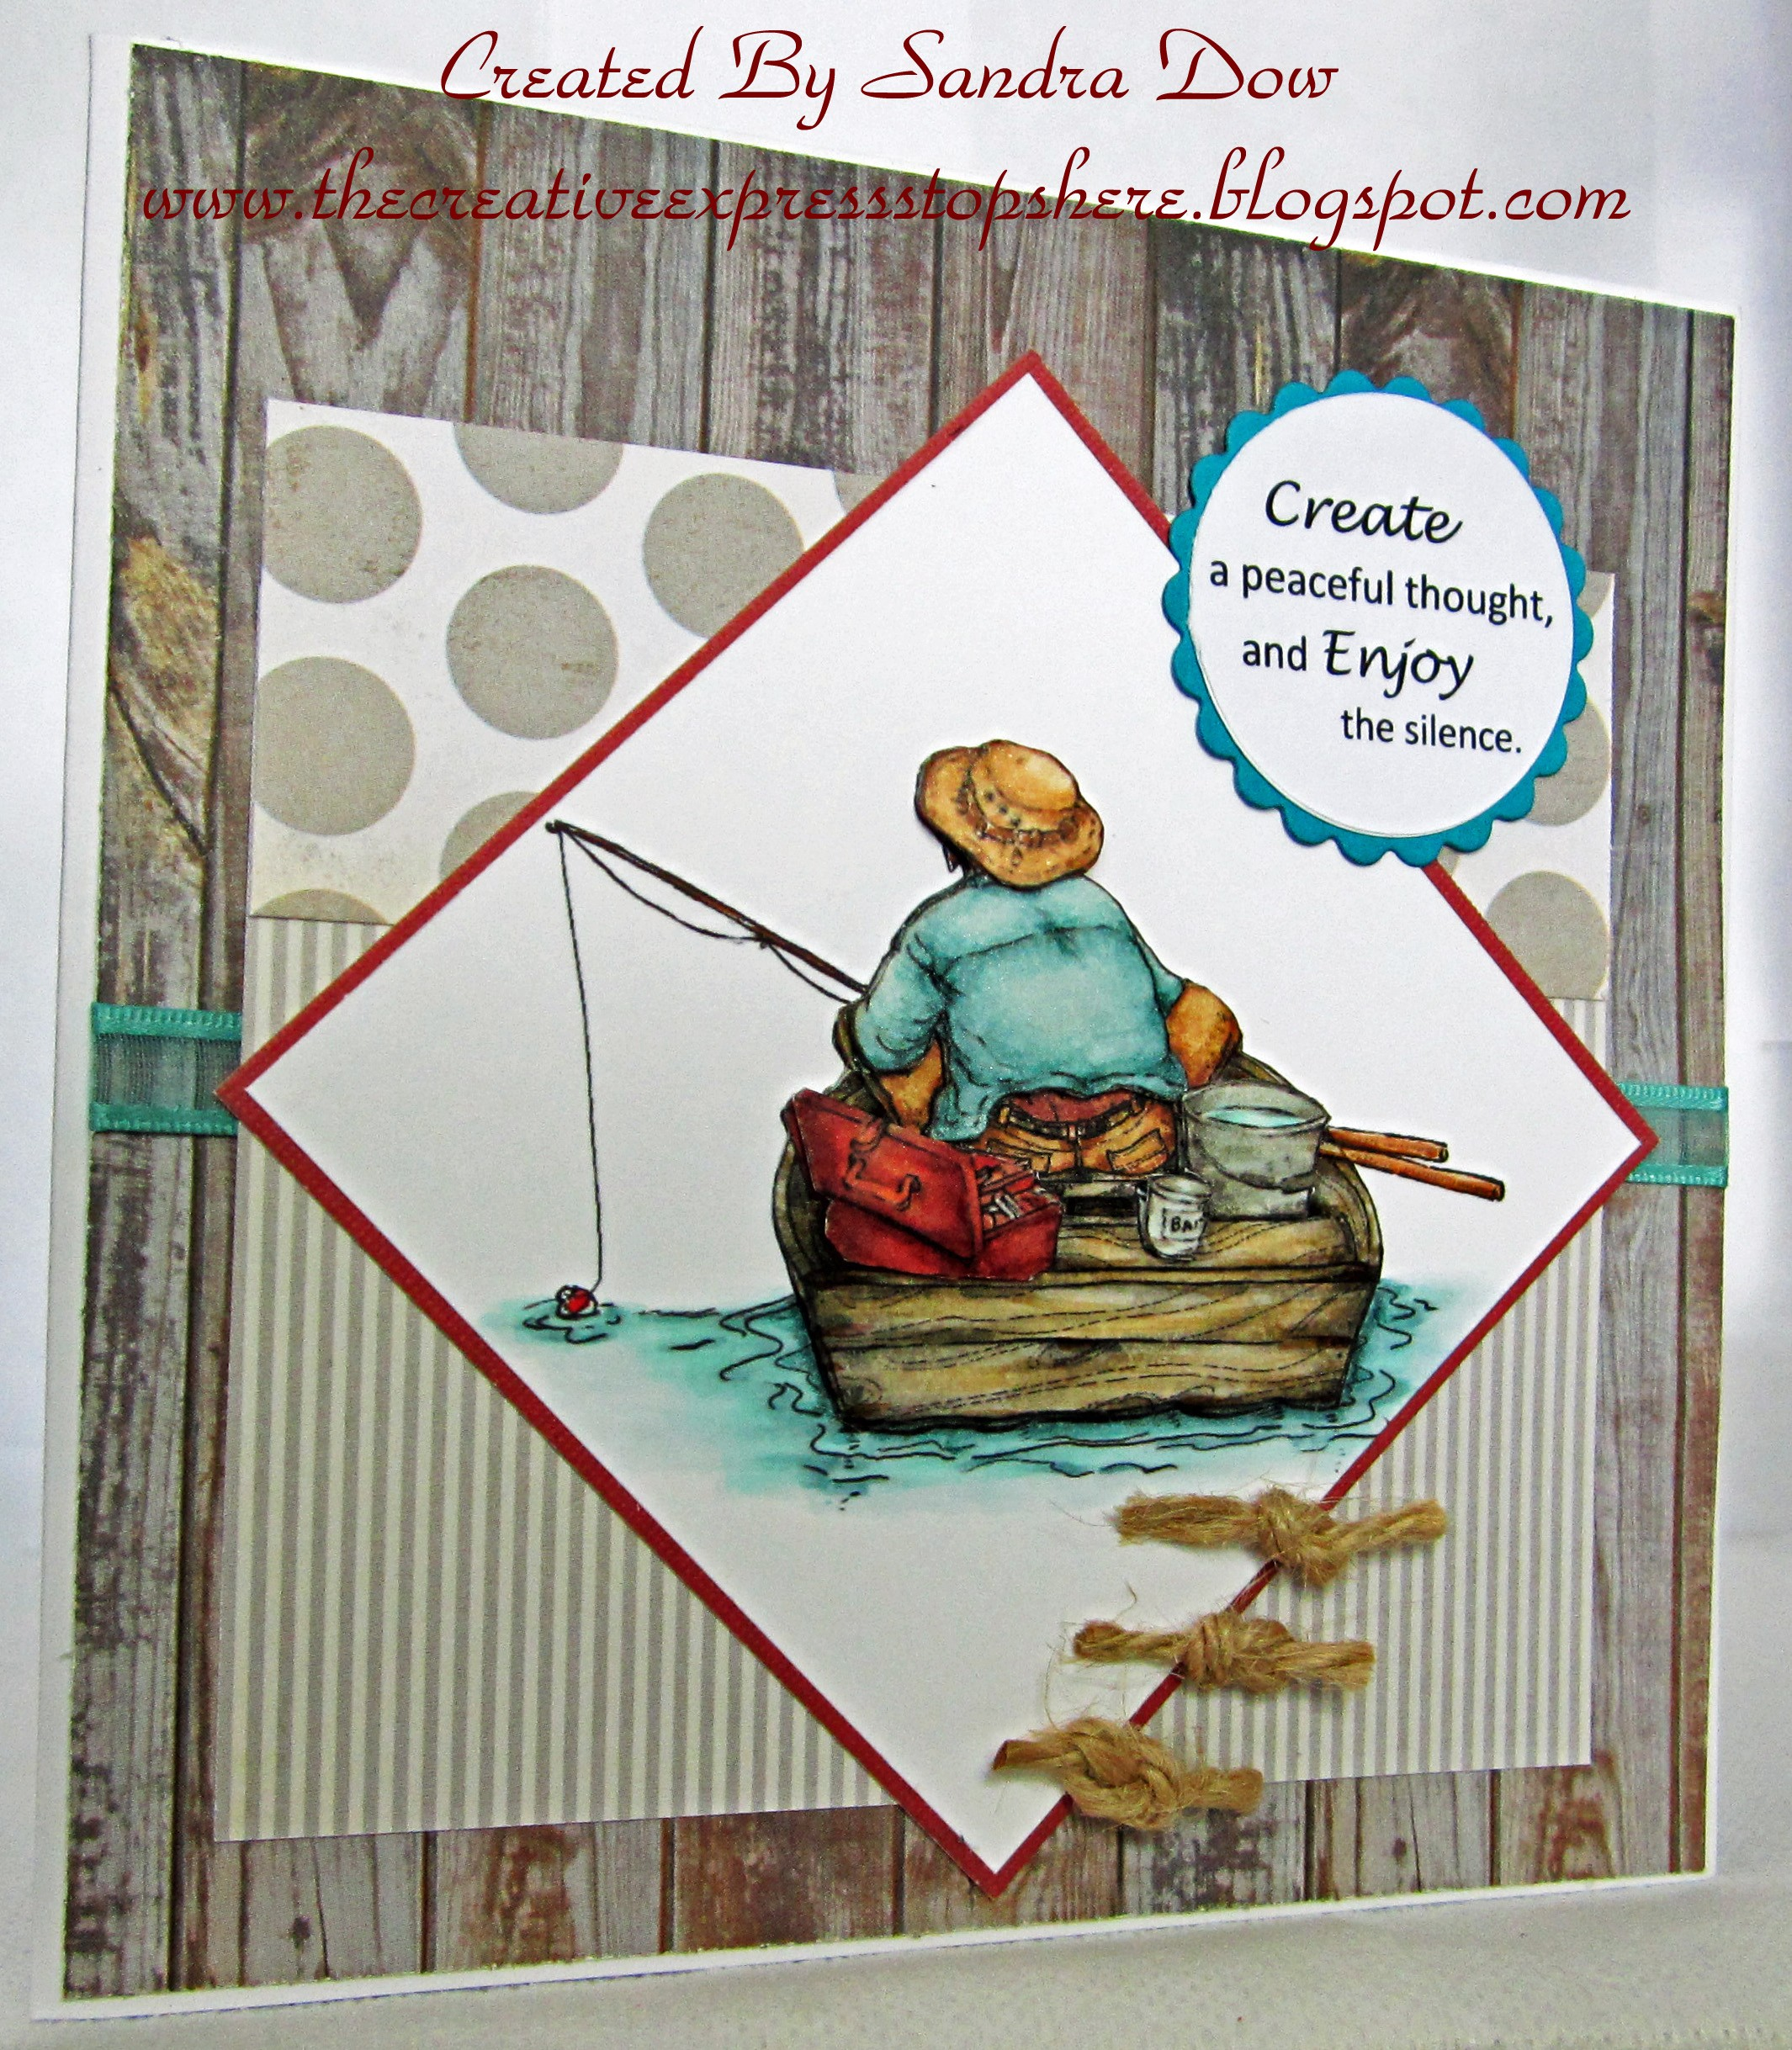 handmade 80th birthday card ideas ; handmade-80th-birthday-cards-lovely-i-made-this-card-for-my-father-s-80th-birthday-created-using-a-mo-of-handmade-80th-birthday-cards